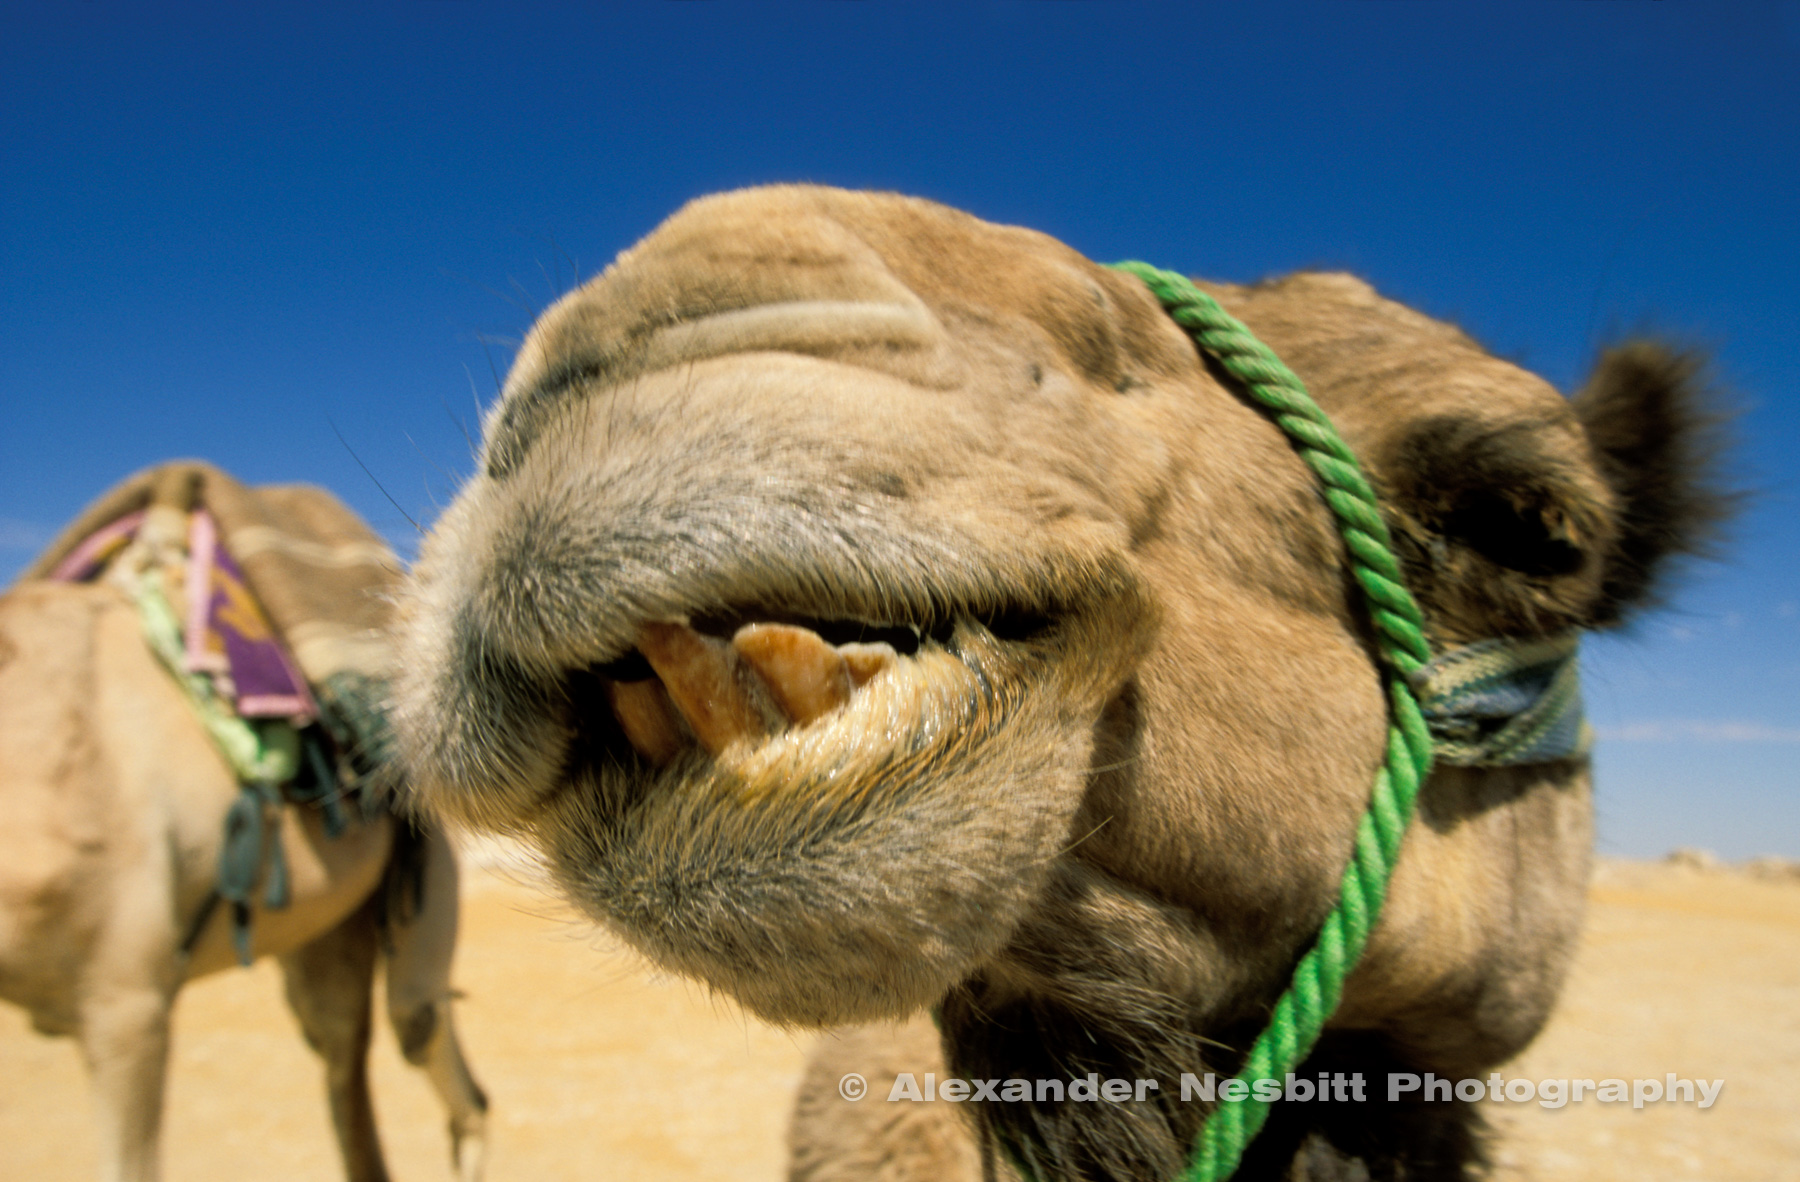 Camel face super close up on desert camel trek.